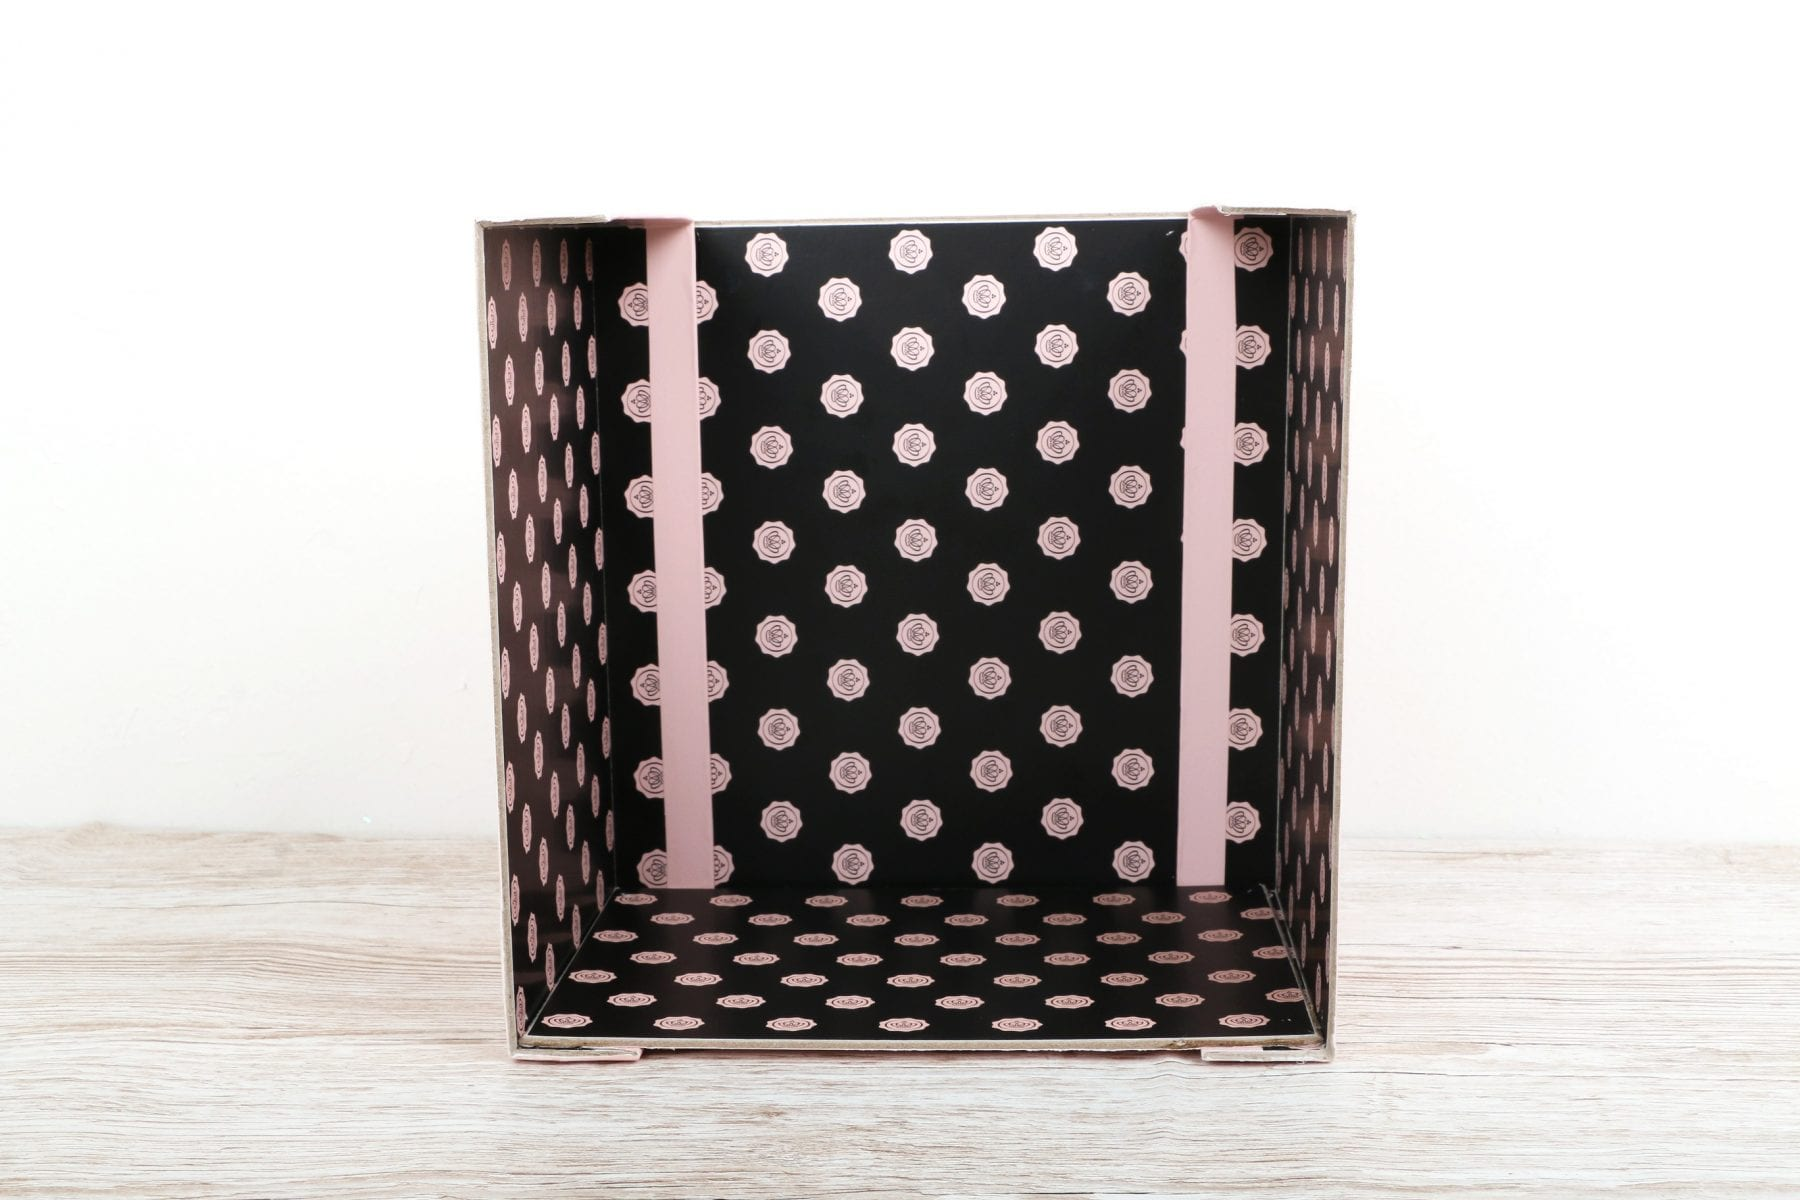 turn your glossybox into a draw unit